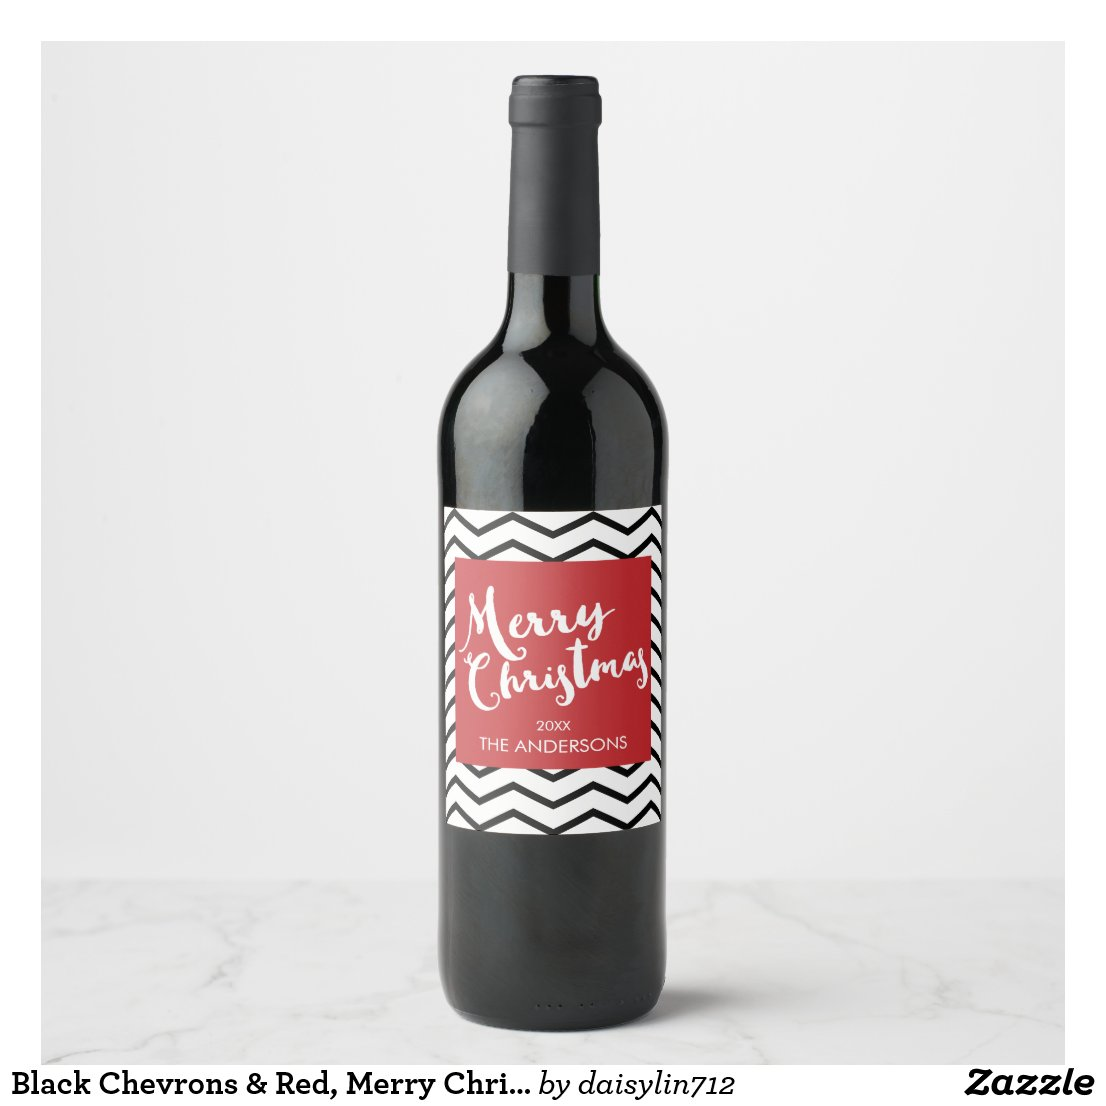 Black Chevrons & Red, Merry Christmas Personalized Wine Label